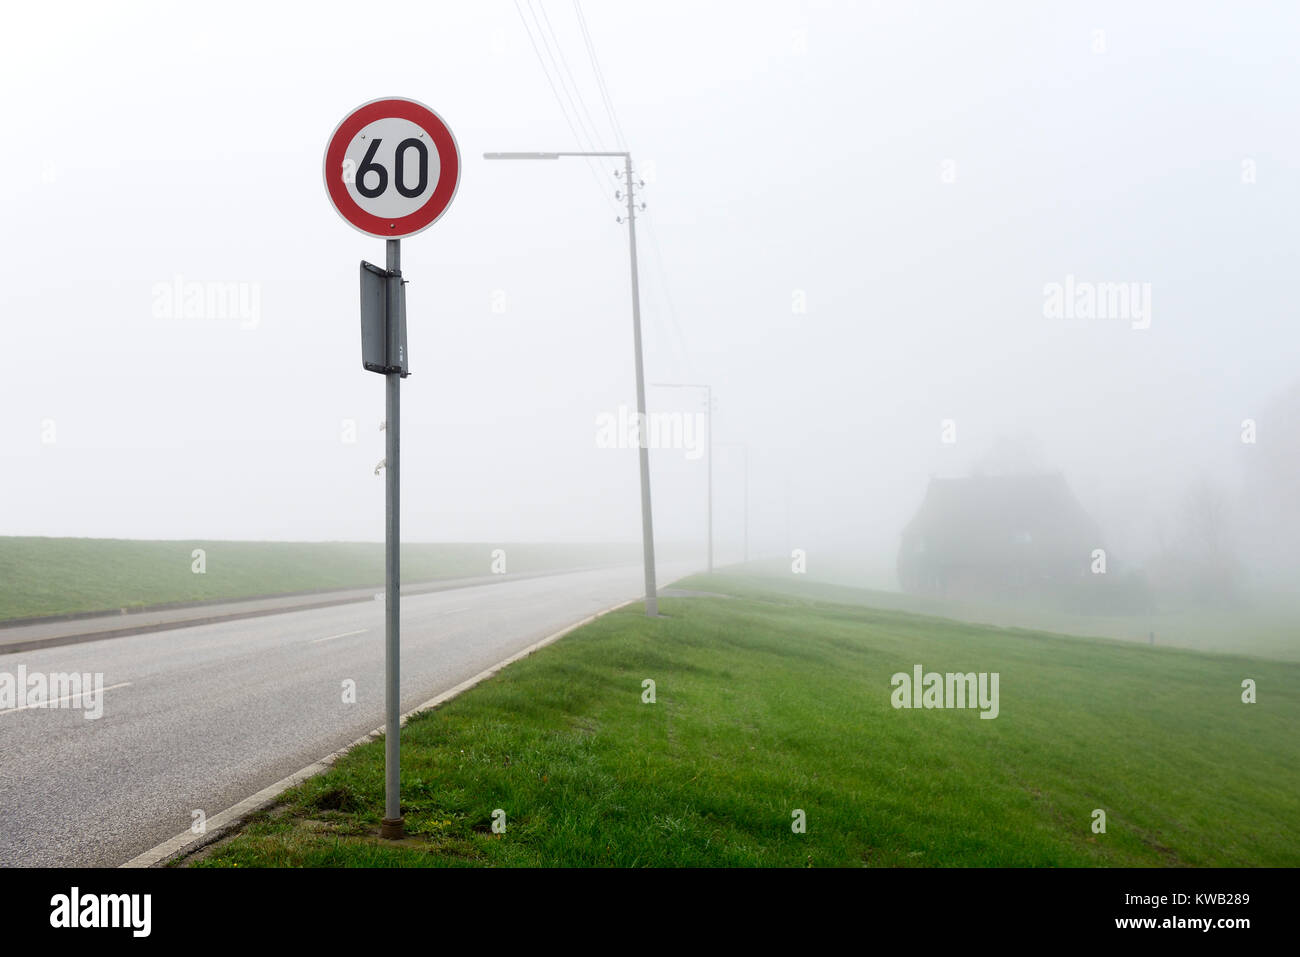 Misty Deichstrasse in Kirchwerder, Hamburg, Germany, Europe, Neblige Deichstra?e in Kirchwerder, Deutschland, Europa, Stock Photo